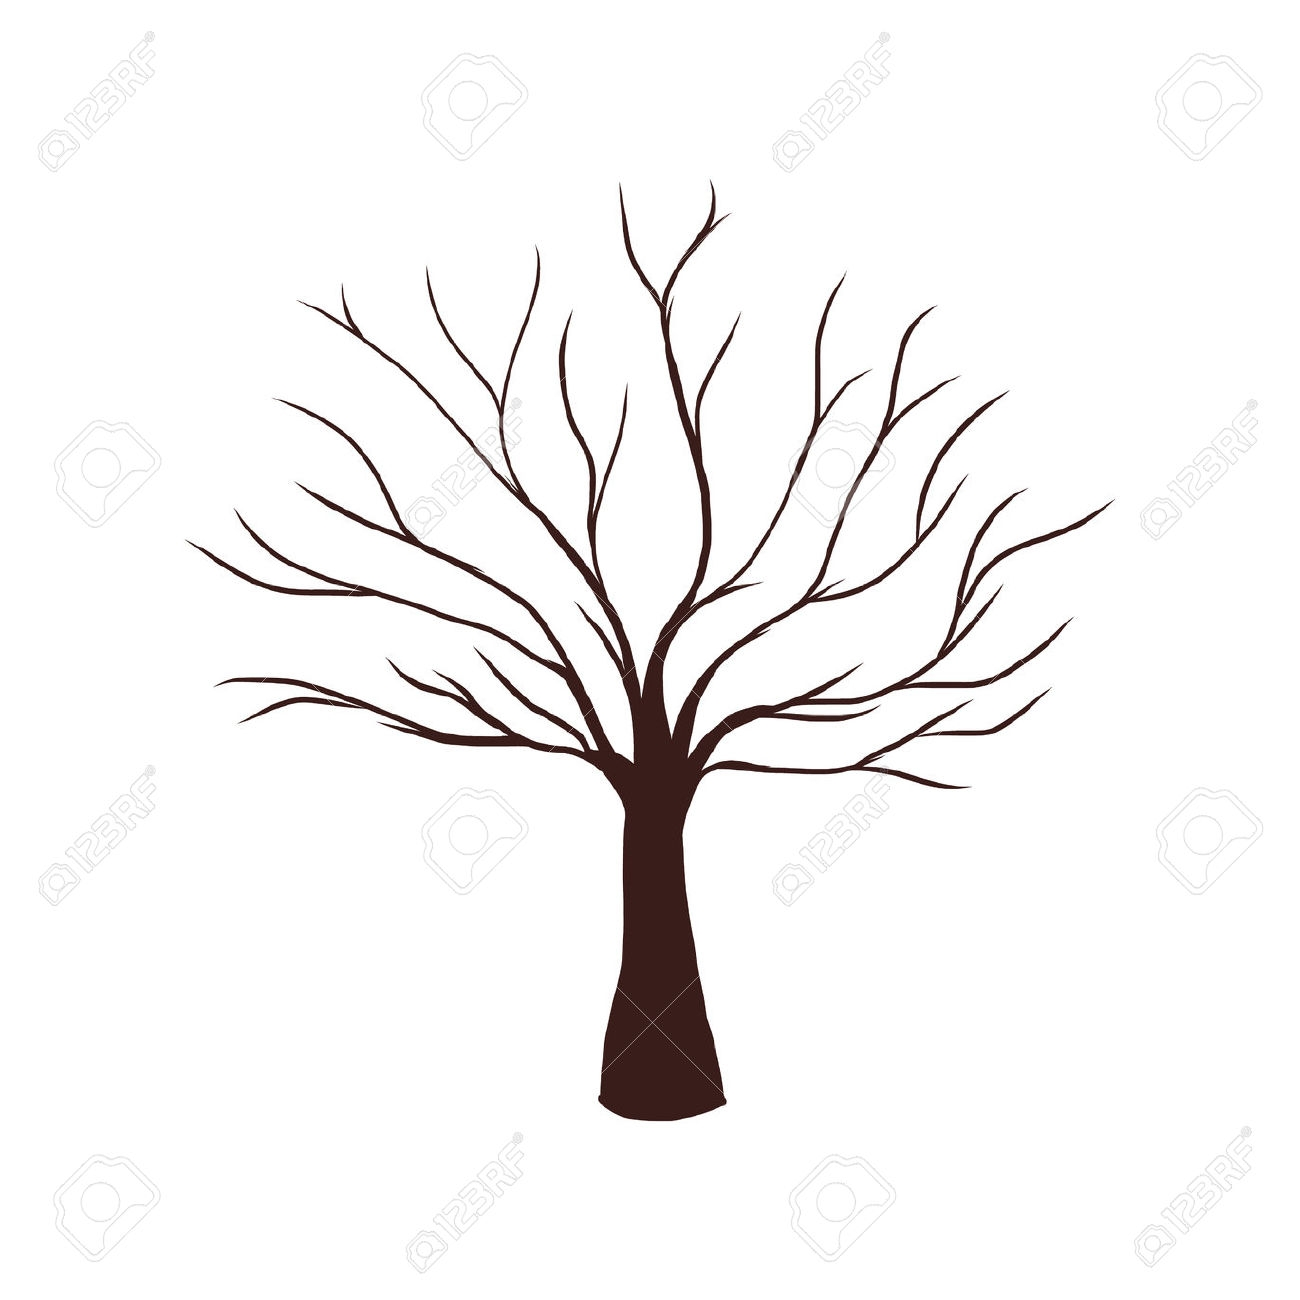 Brown tree without leaves drawing.